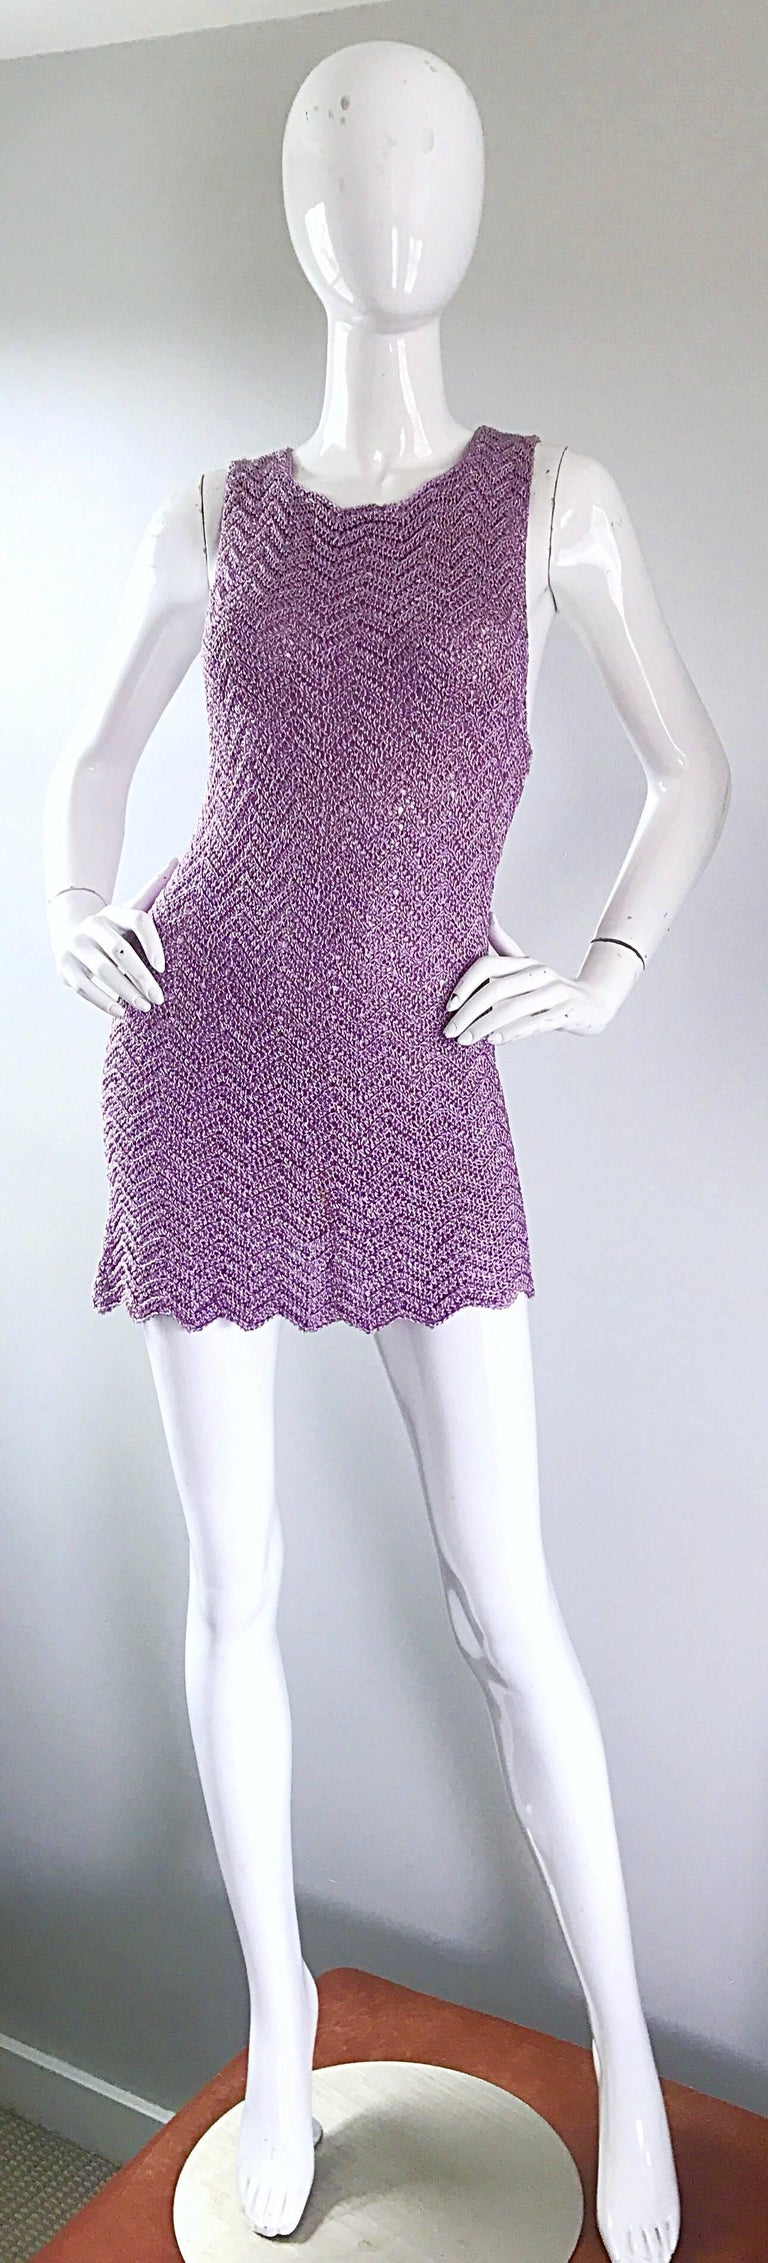 Sexy 90s ISAAC MIZRAHI for BERGDORF GOODMAN light purple lavender and gold crochet mini dress! Features a seductive low cut sleeve. Simple slips over to head. Hand crochet rayon features gold silk thread intertwined throughout, and is super soft